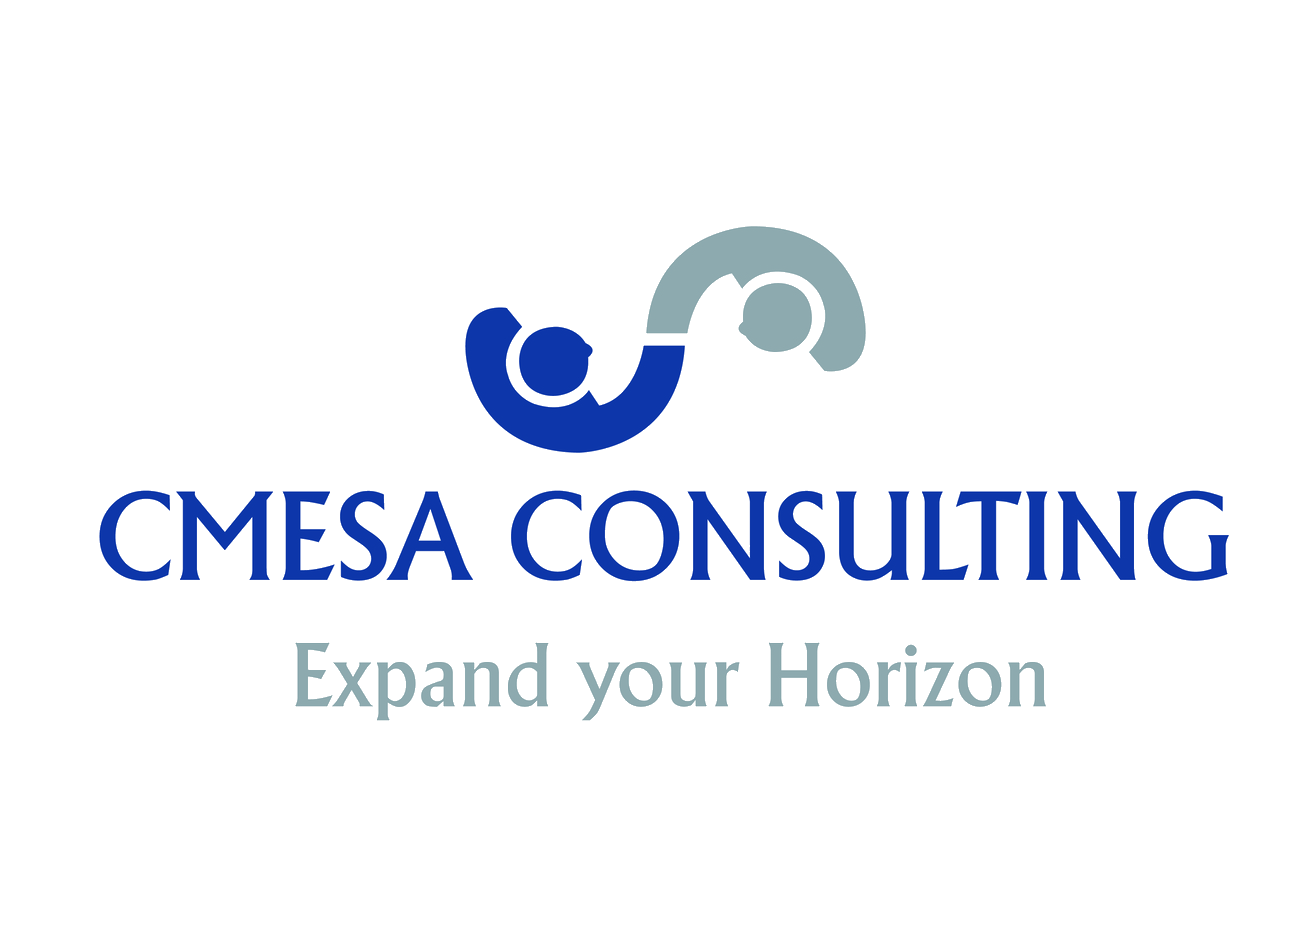 CMESA Consulting